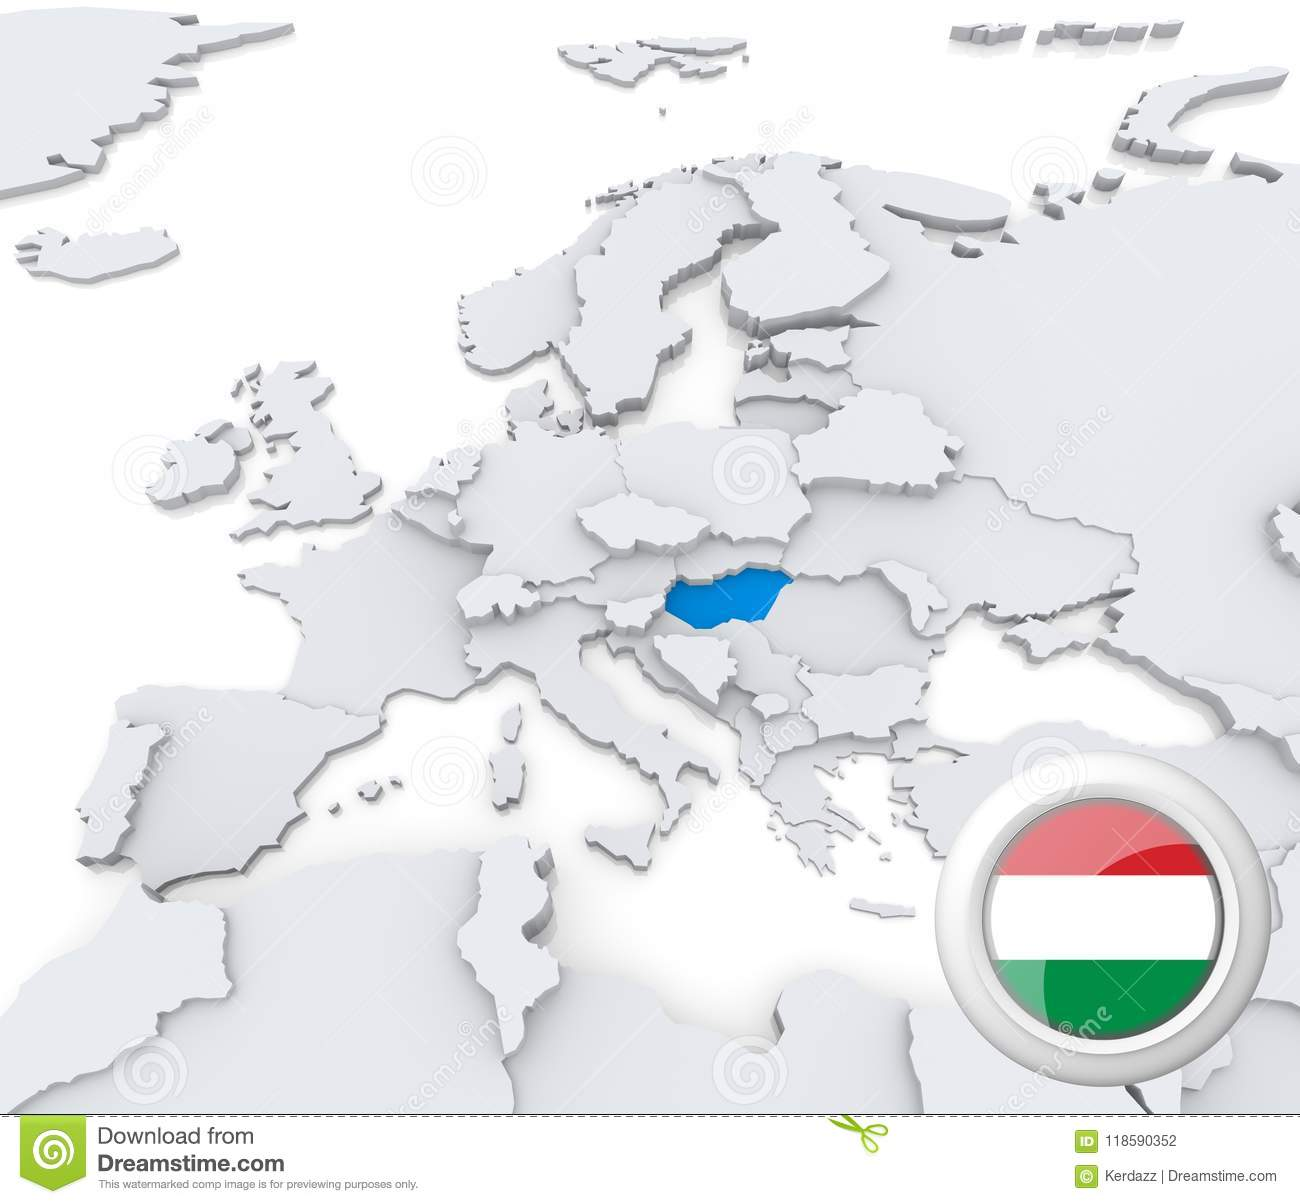 Picture of: Hungary On Map Of Europe Stock Illustration Illustration Of Graphic 118590352